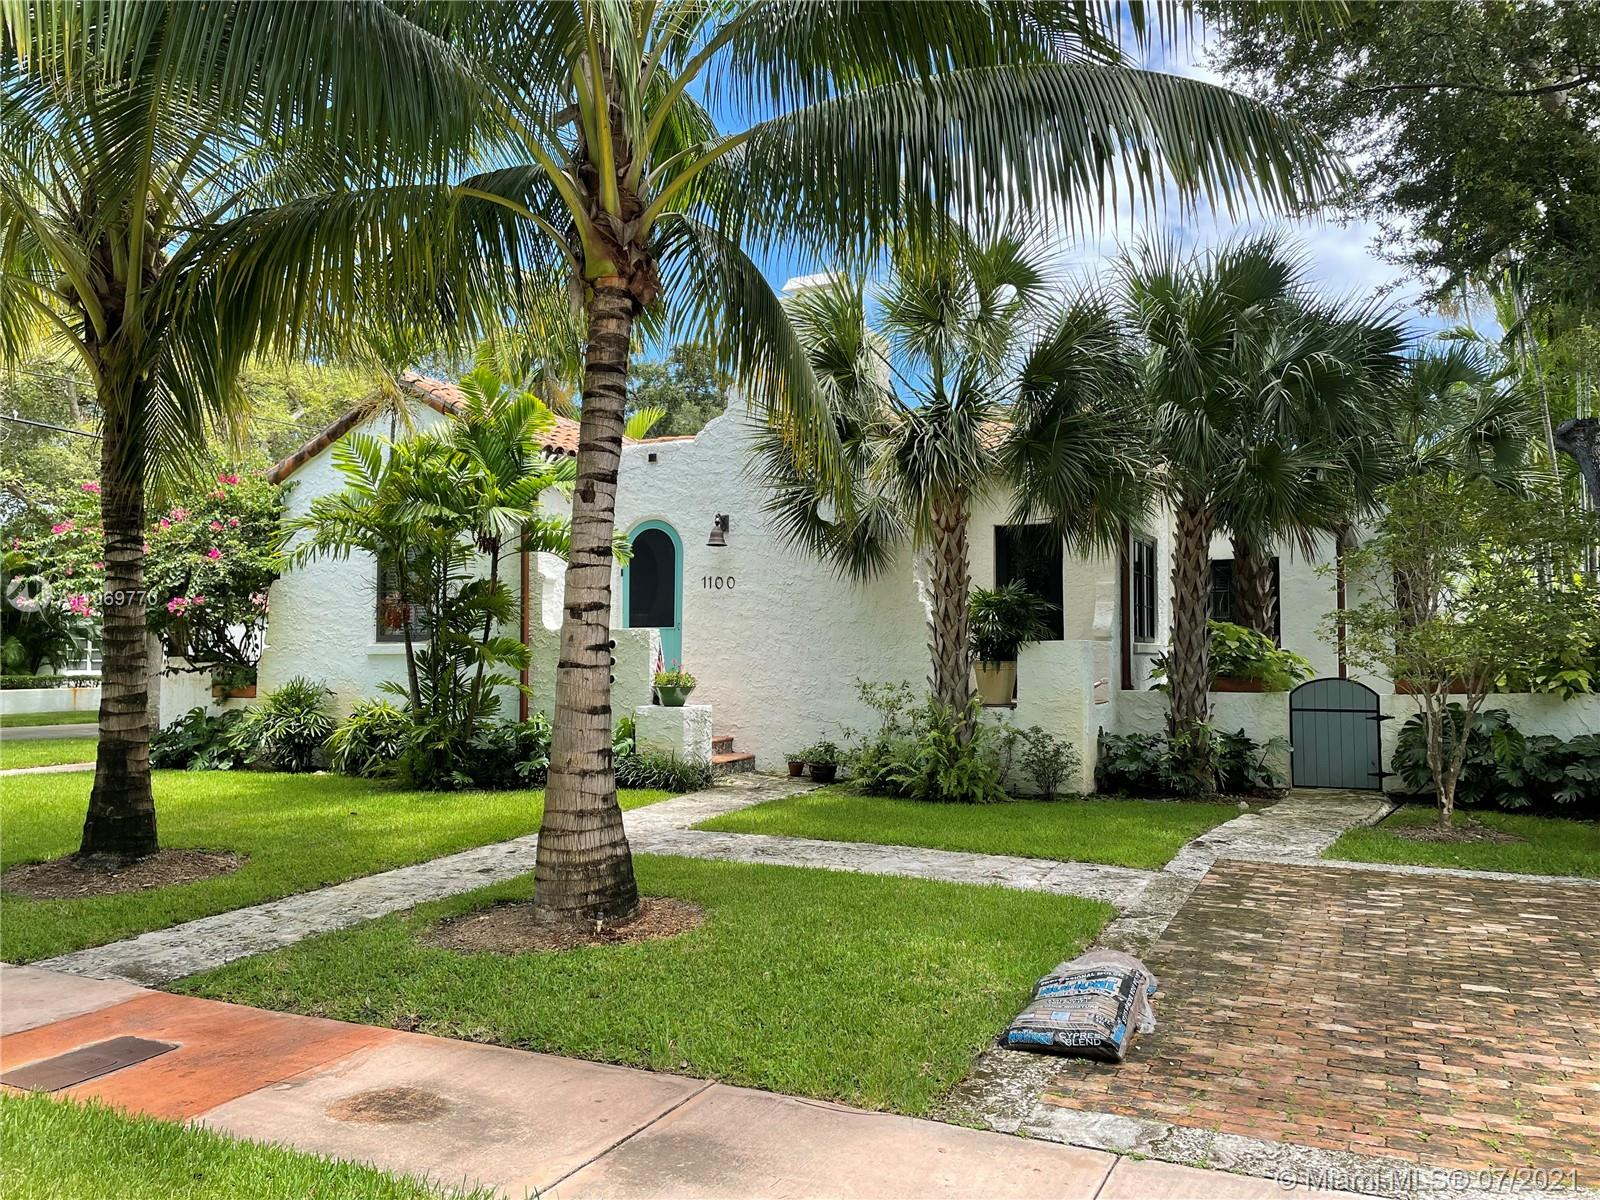 Classic Mediterranean Home in the heart of the Coral Gables Historic Area.  This Denman Fink designed ( Designer of the Venetian Pool and The Gables Entrances) home has been passionately restored and renovated by the current owner. The home has new a roof, plumbing, electric, HVAC, Kitchen, Bathrooms, Impact Windows and Doors, Keystone and tile inlay walkways and Patios. Too many improvements to list. A new home in a 1924 shell. Everything that wasn't restored was duplicated by local craftsmen.  Located on the quiet corner of Asturia and Cordoba a block from the Granada Golf Course and blocks to Downtown Coral Gables with its shops and restaurants. A rare opportunity to purchase a restored classic in Coral Gables.